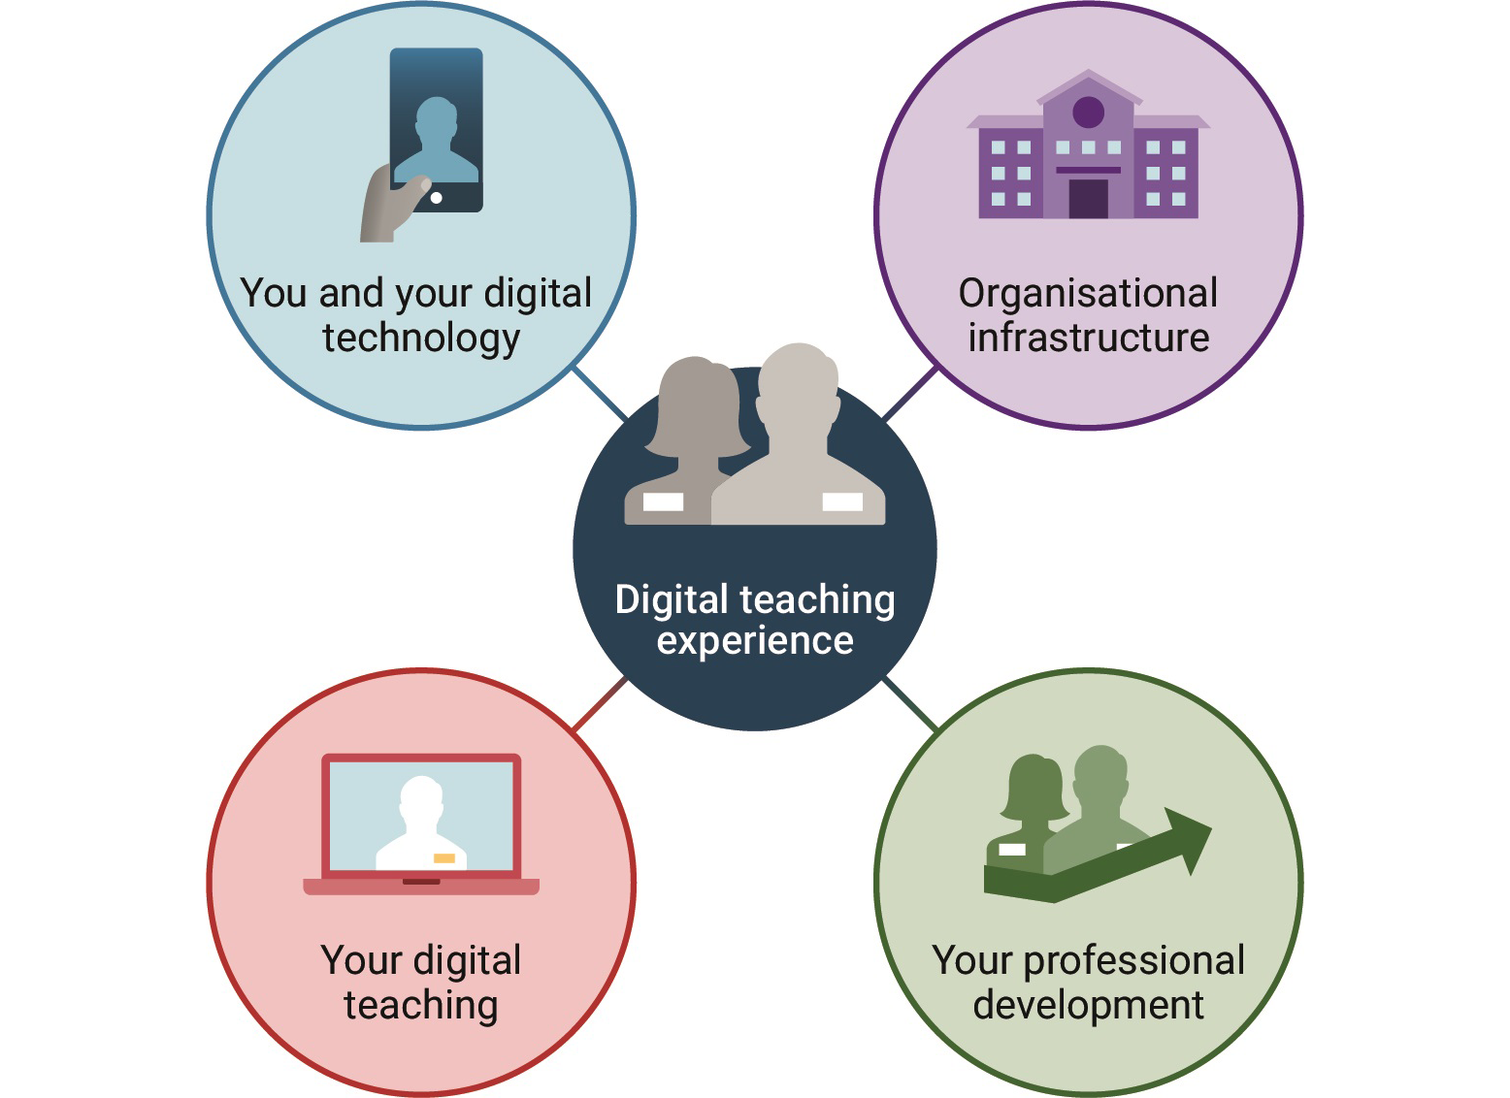 Smaller version - Digital-Teaching-Experience.png